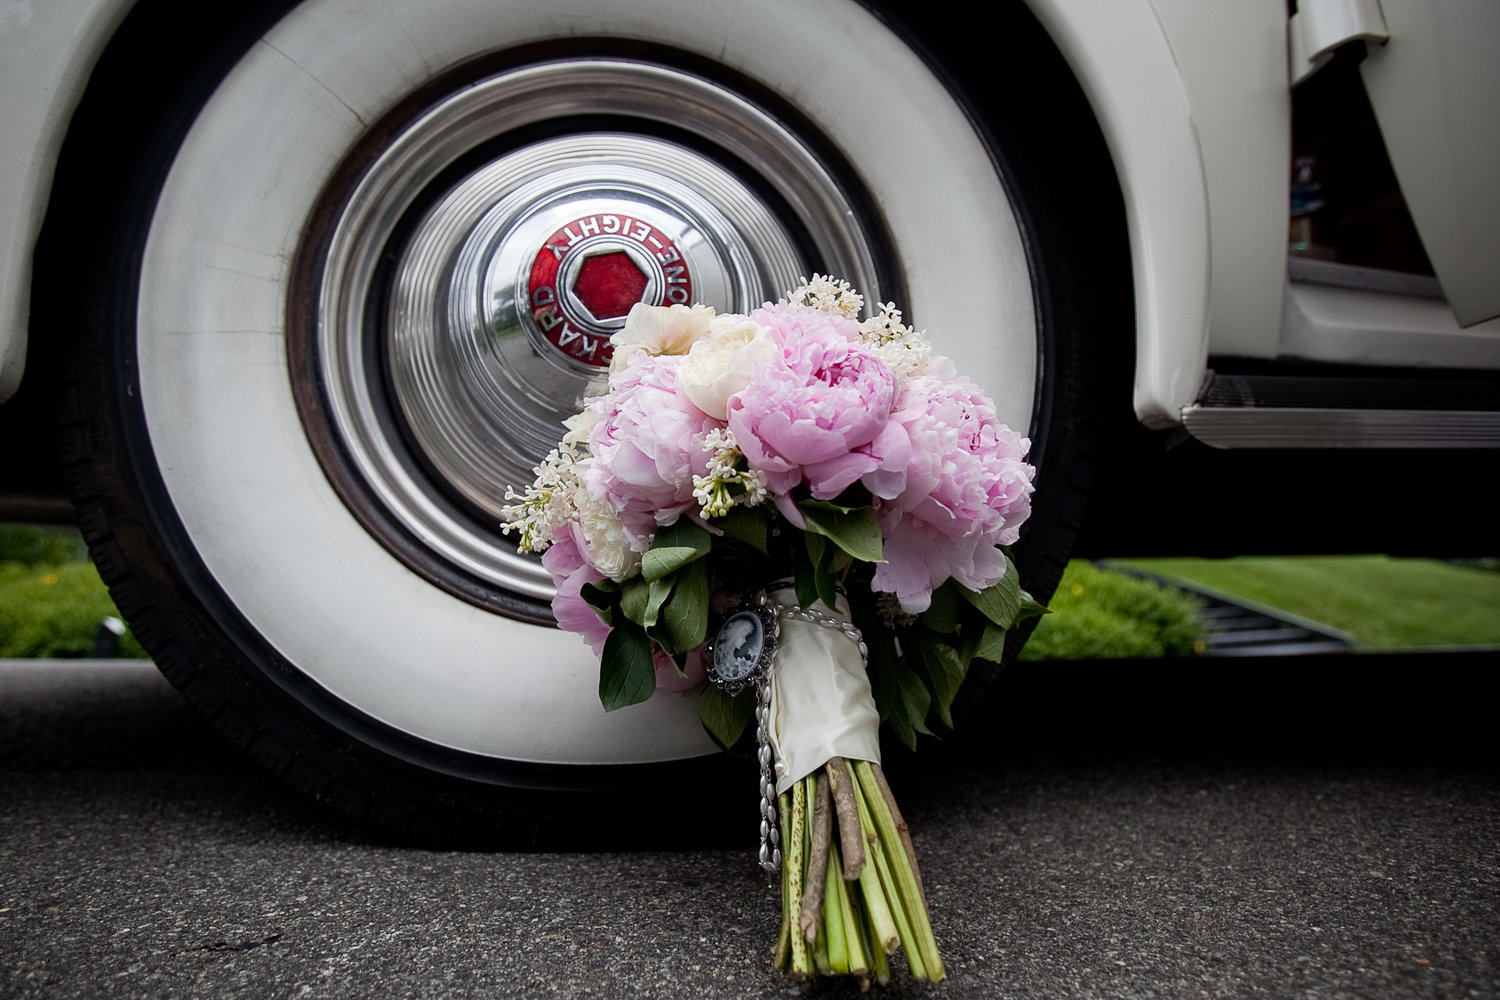 01.30.13+Packard+at+Farmington,+Looney+with+bouquet+on+tire.jpg